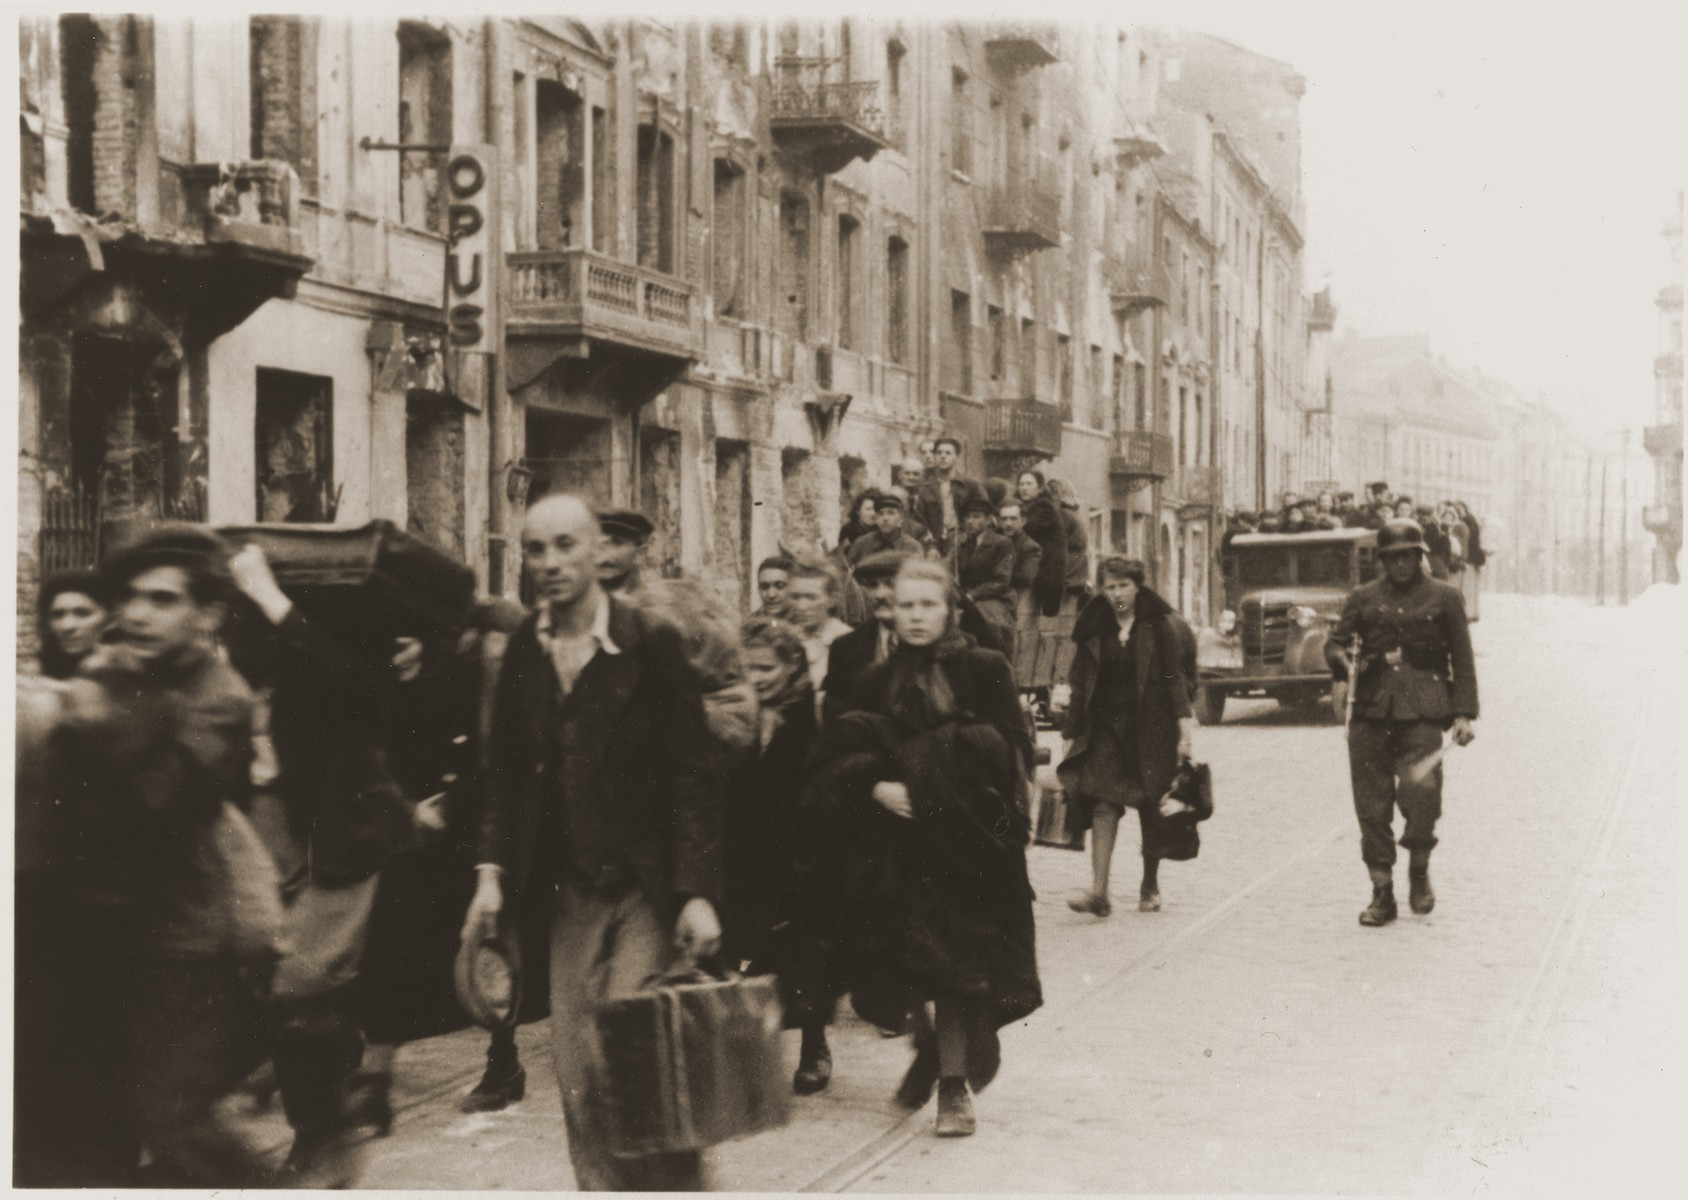 Jews captured by the SS during the suppression of the Warsaw ghetto uprising march to the Umschlagplatz for deportation.